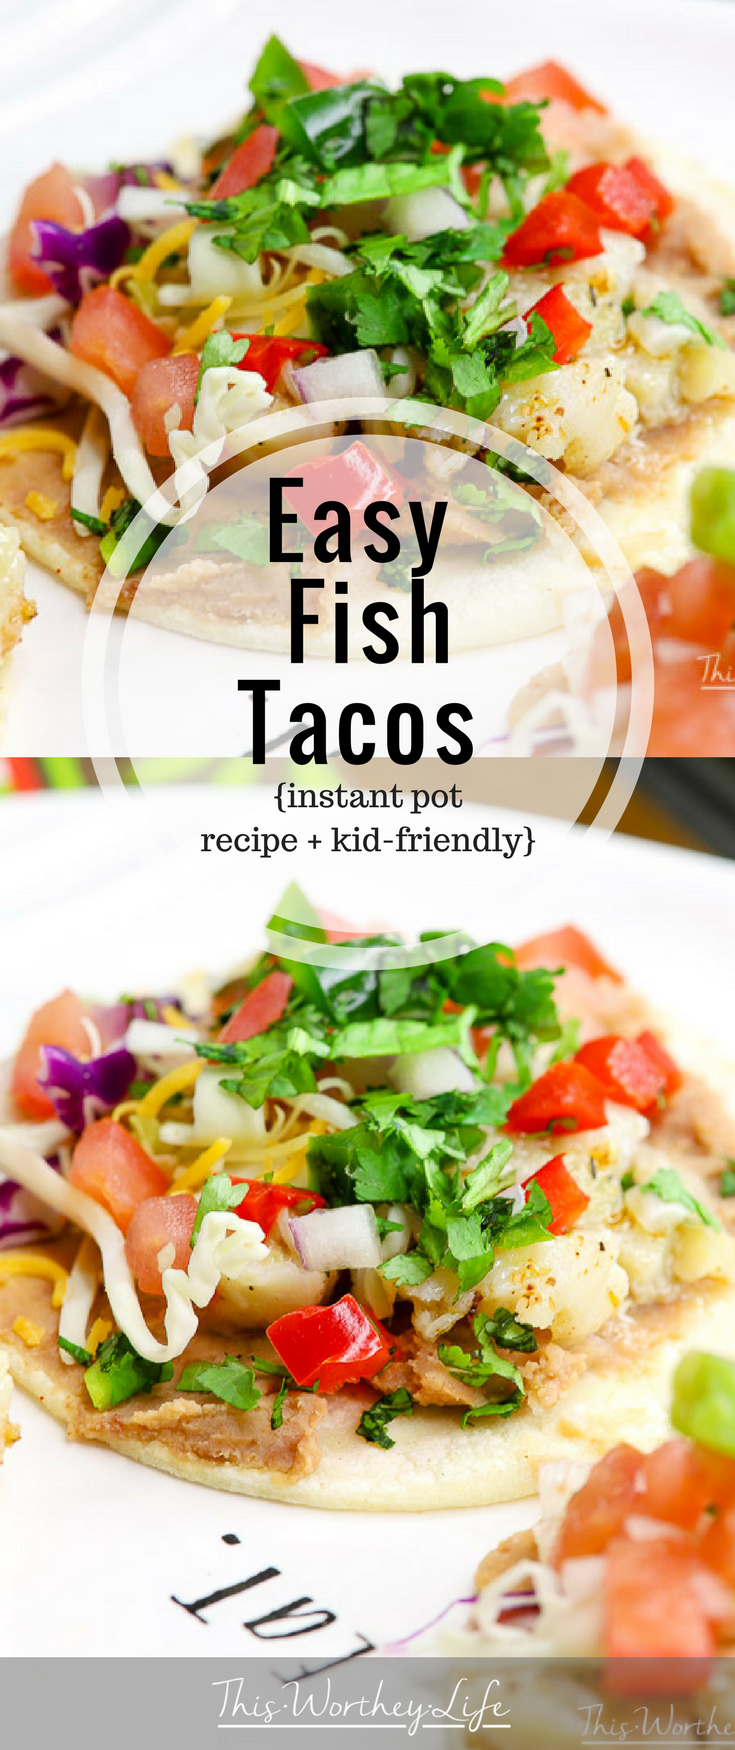 Get dinner on the table in 20 minutes with my easy Instant Pot Fish Tacos recipe using Alaska Pollock. I'm sharing how I put this taco recipe together and how my family reacted to using seafood versus another type of meat!